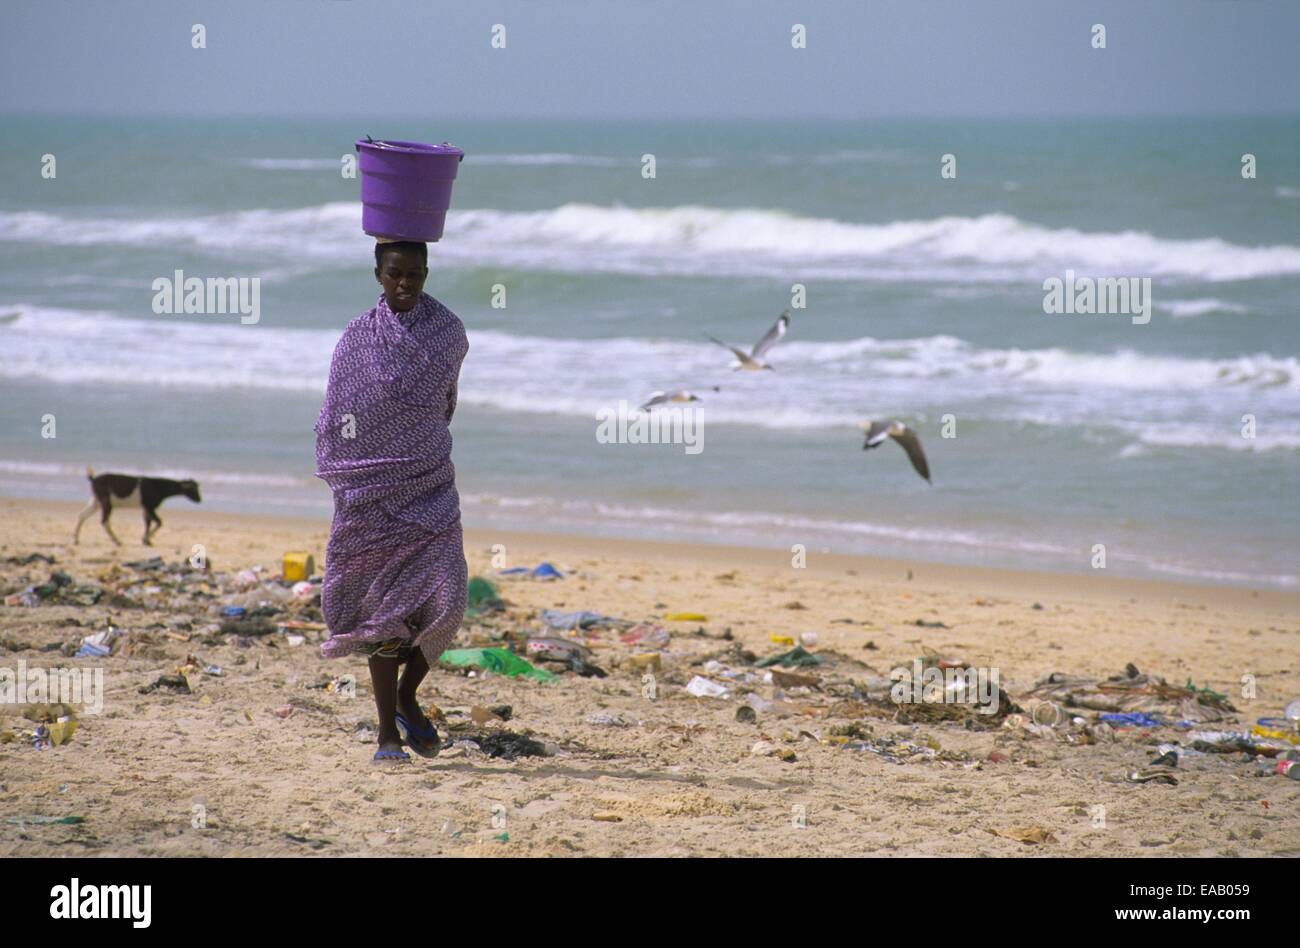 Beach of Langue de Barbarie, Saint Louis, Senegal, West Africa - Stock Image